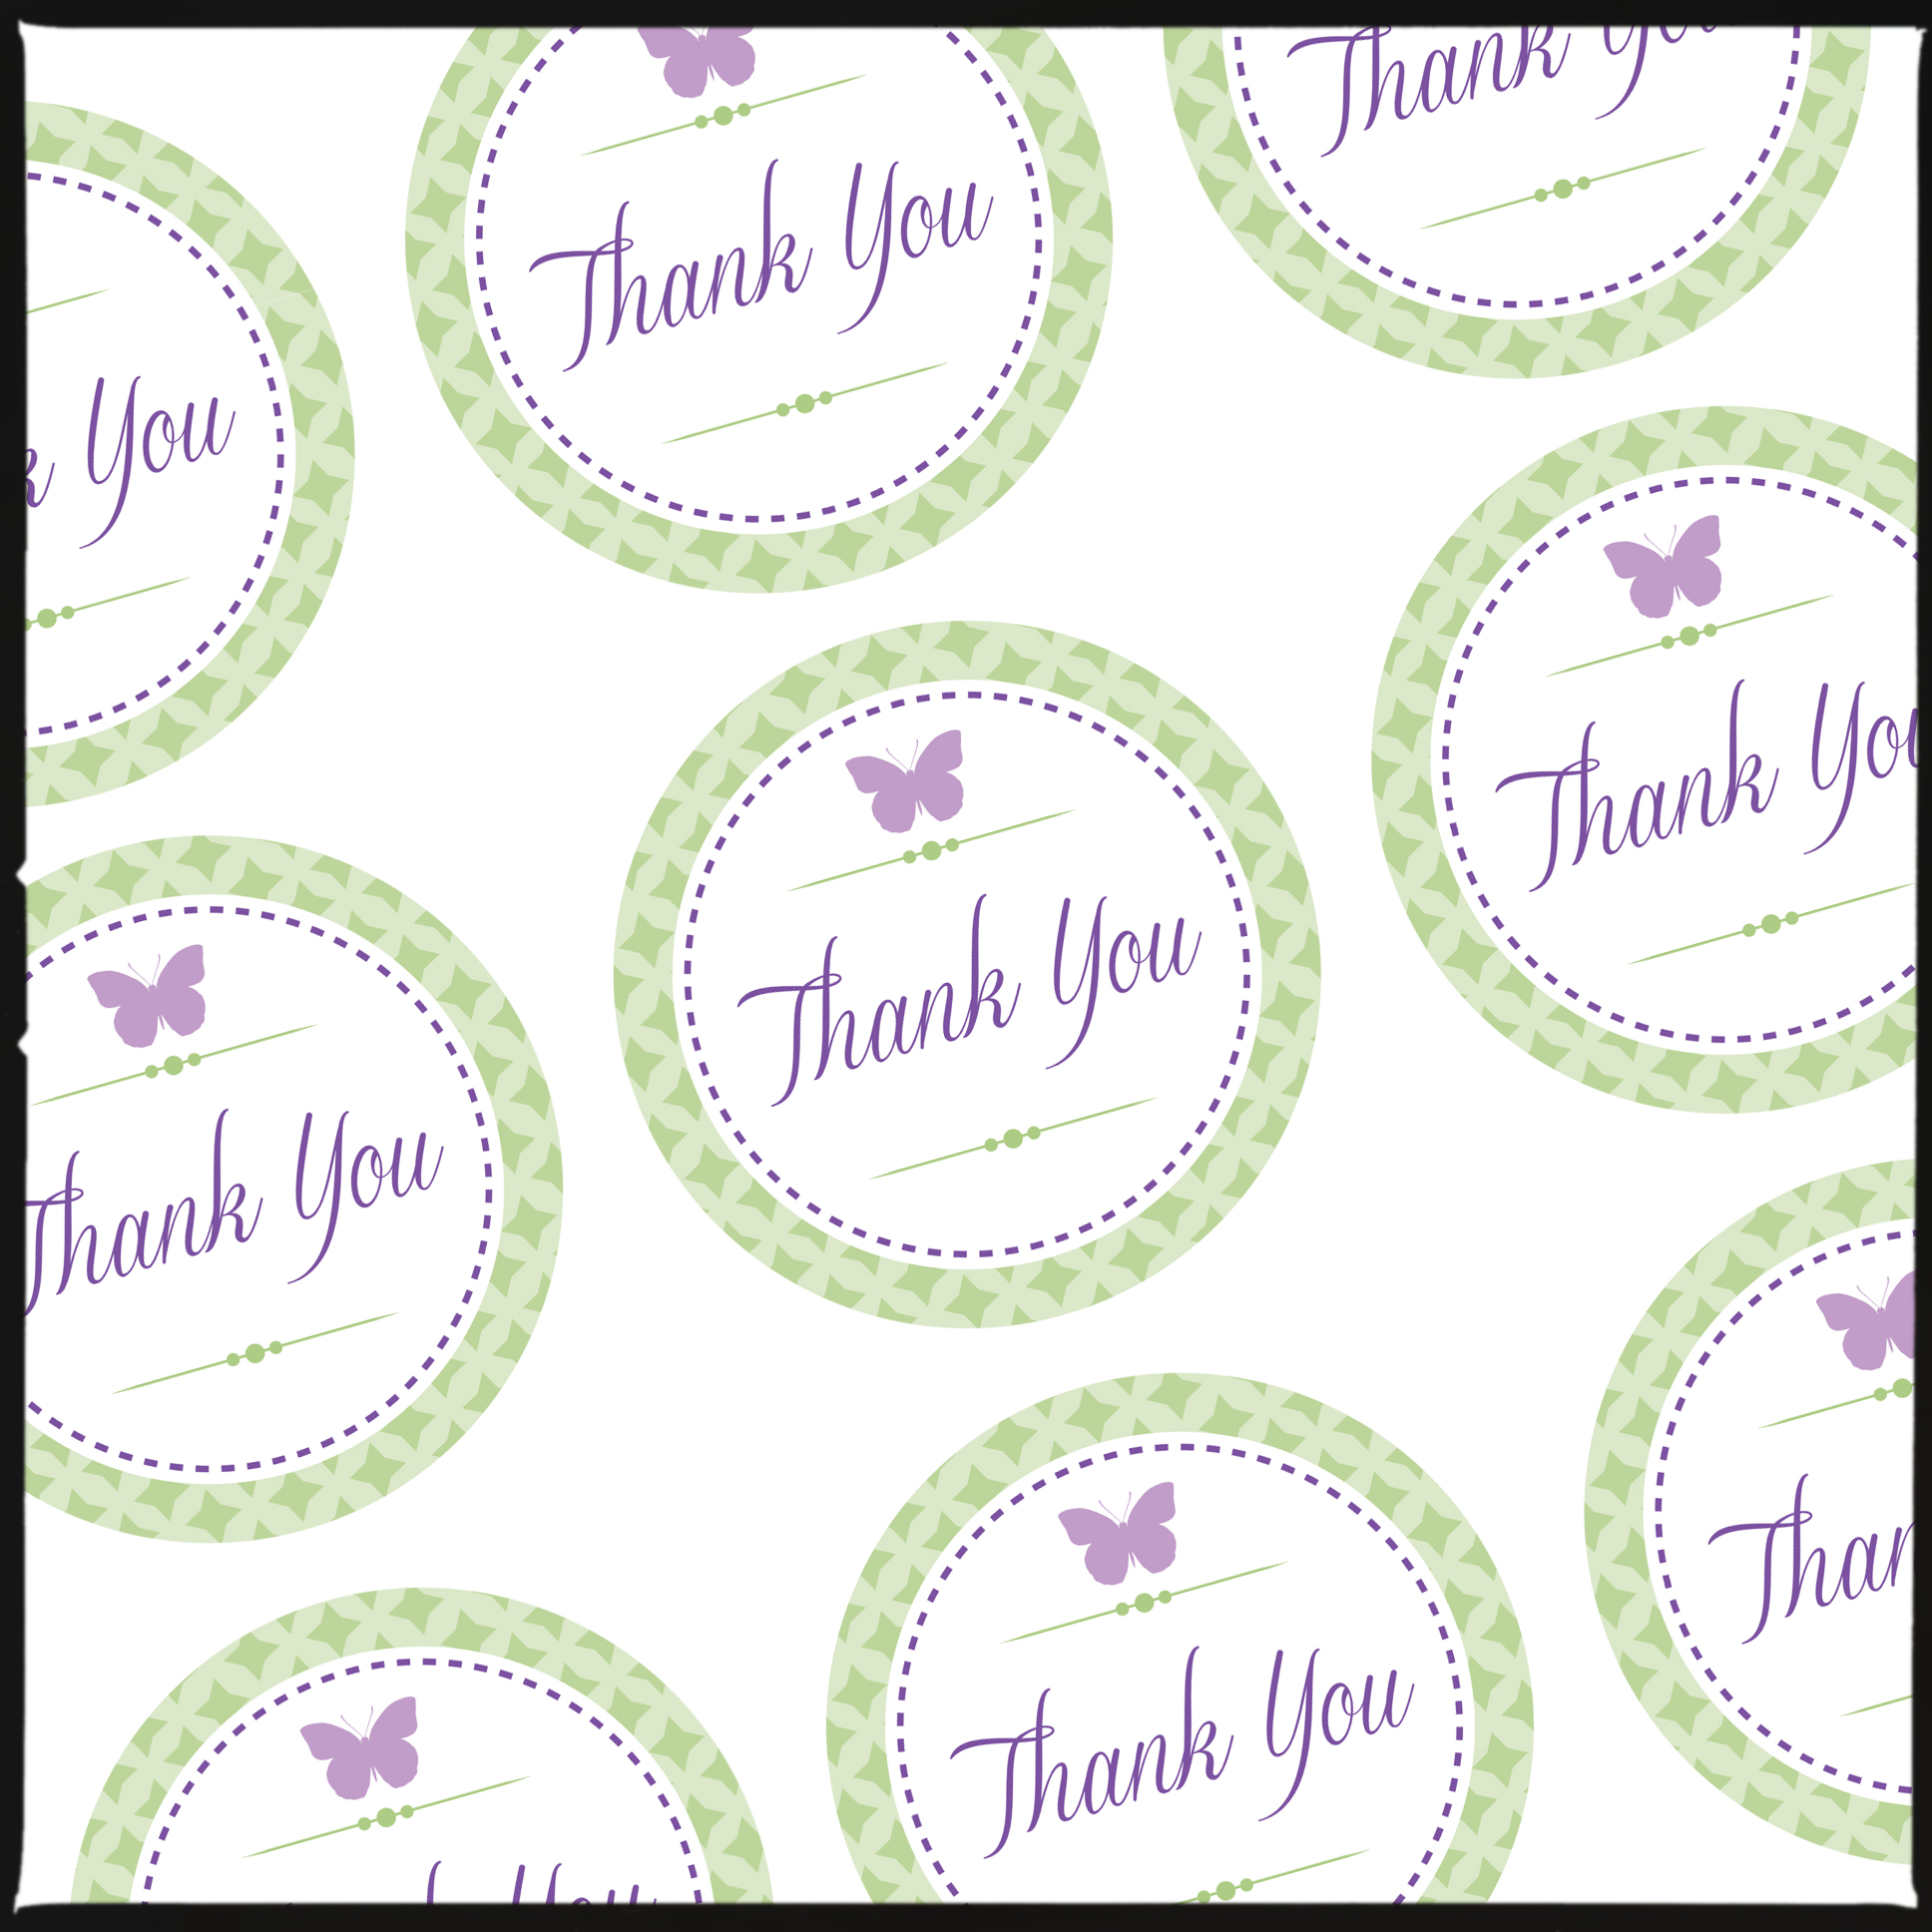 THANK YOU TAGS FOR PRETTY GIFT BAGS (& a free download for you